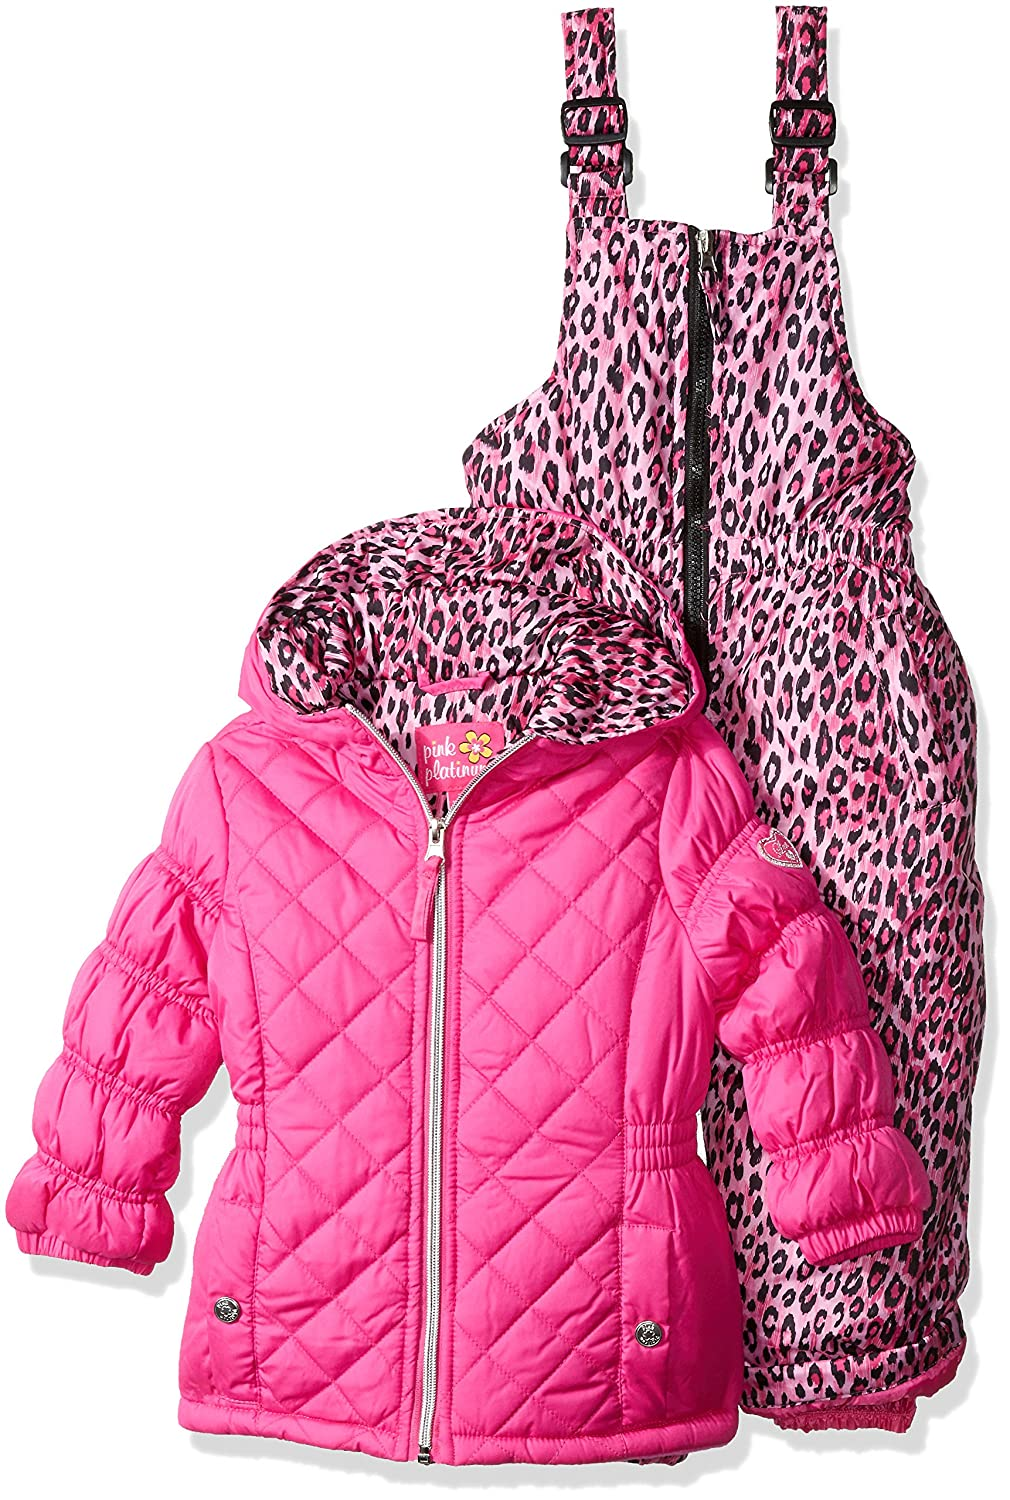 pink ski snowsuit shipping over shoes product snowmobile winter free toddler clothing overstock snowboard puffer orders suit platinum girls on